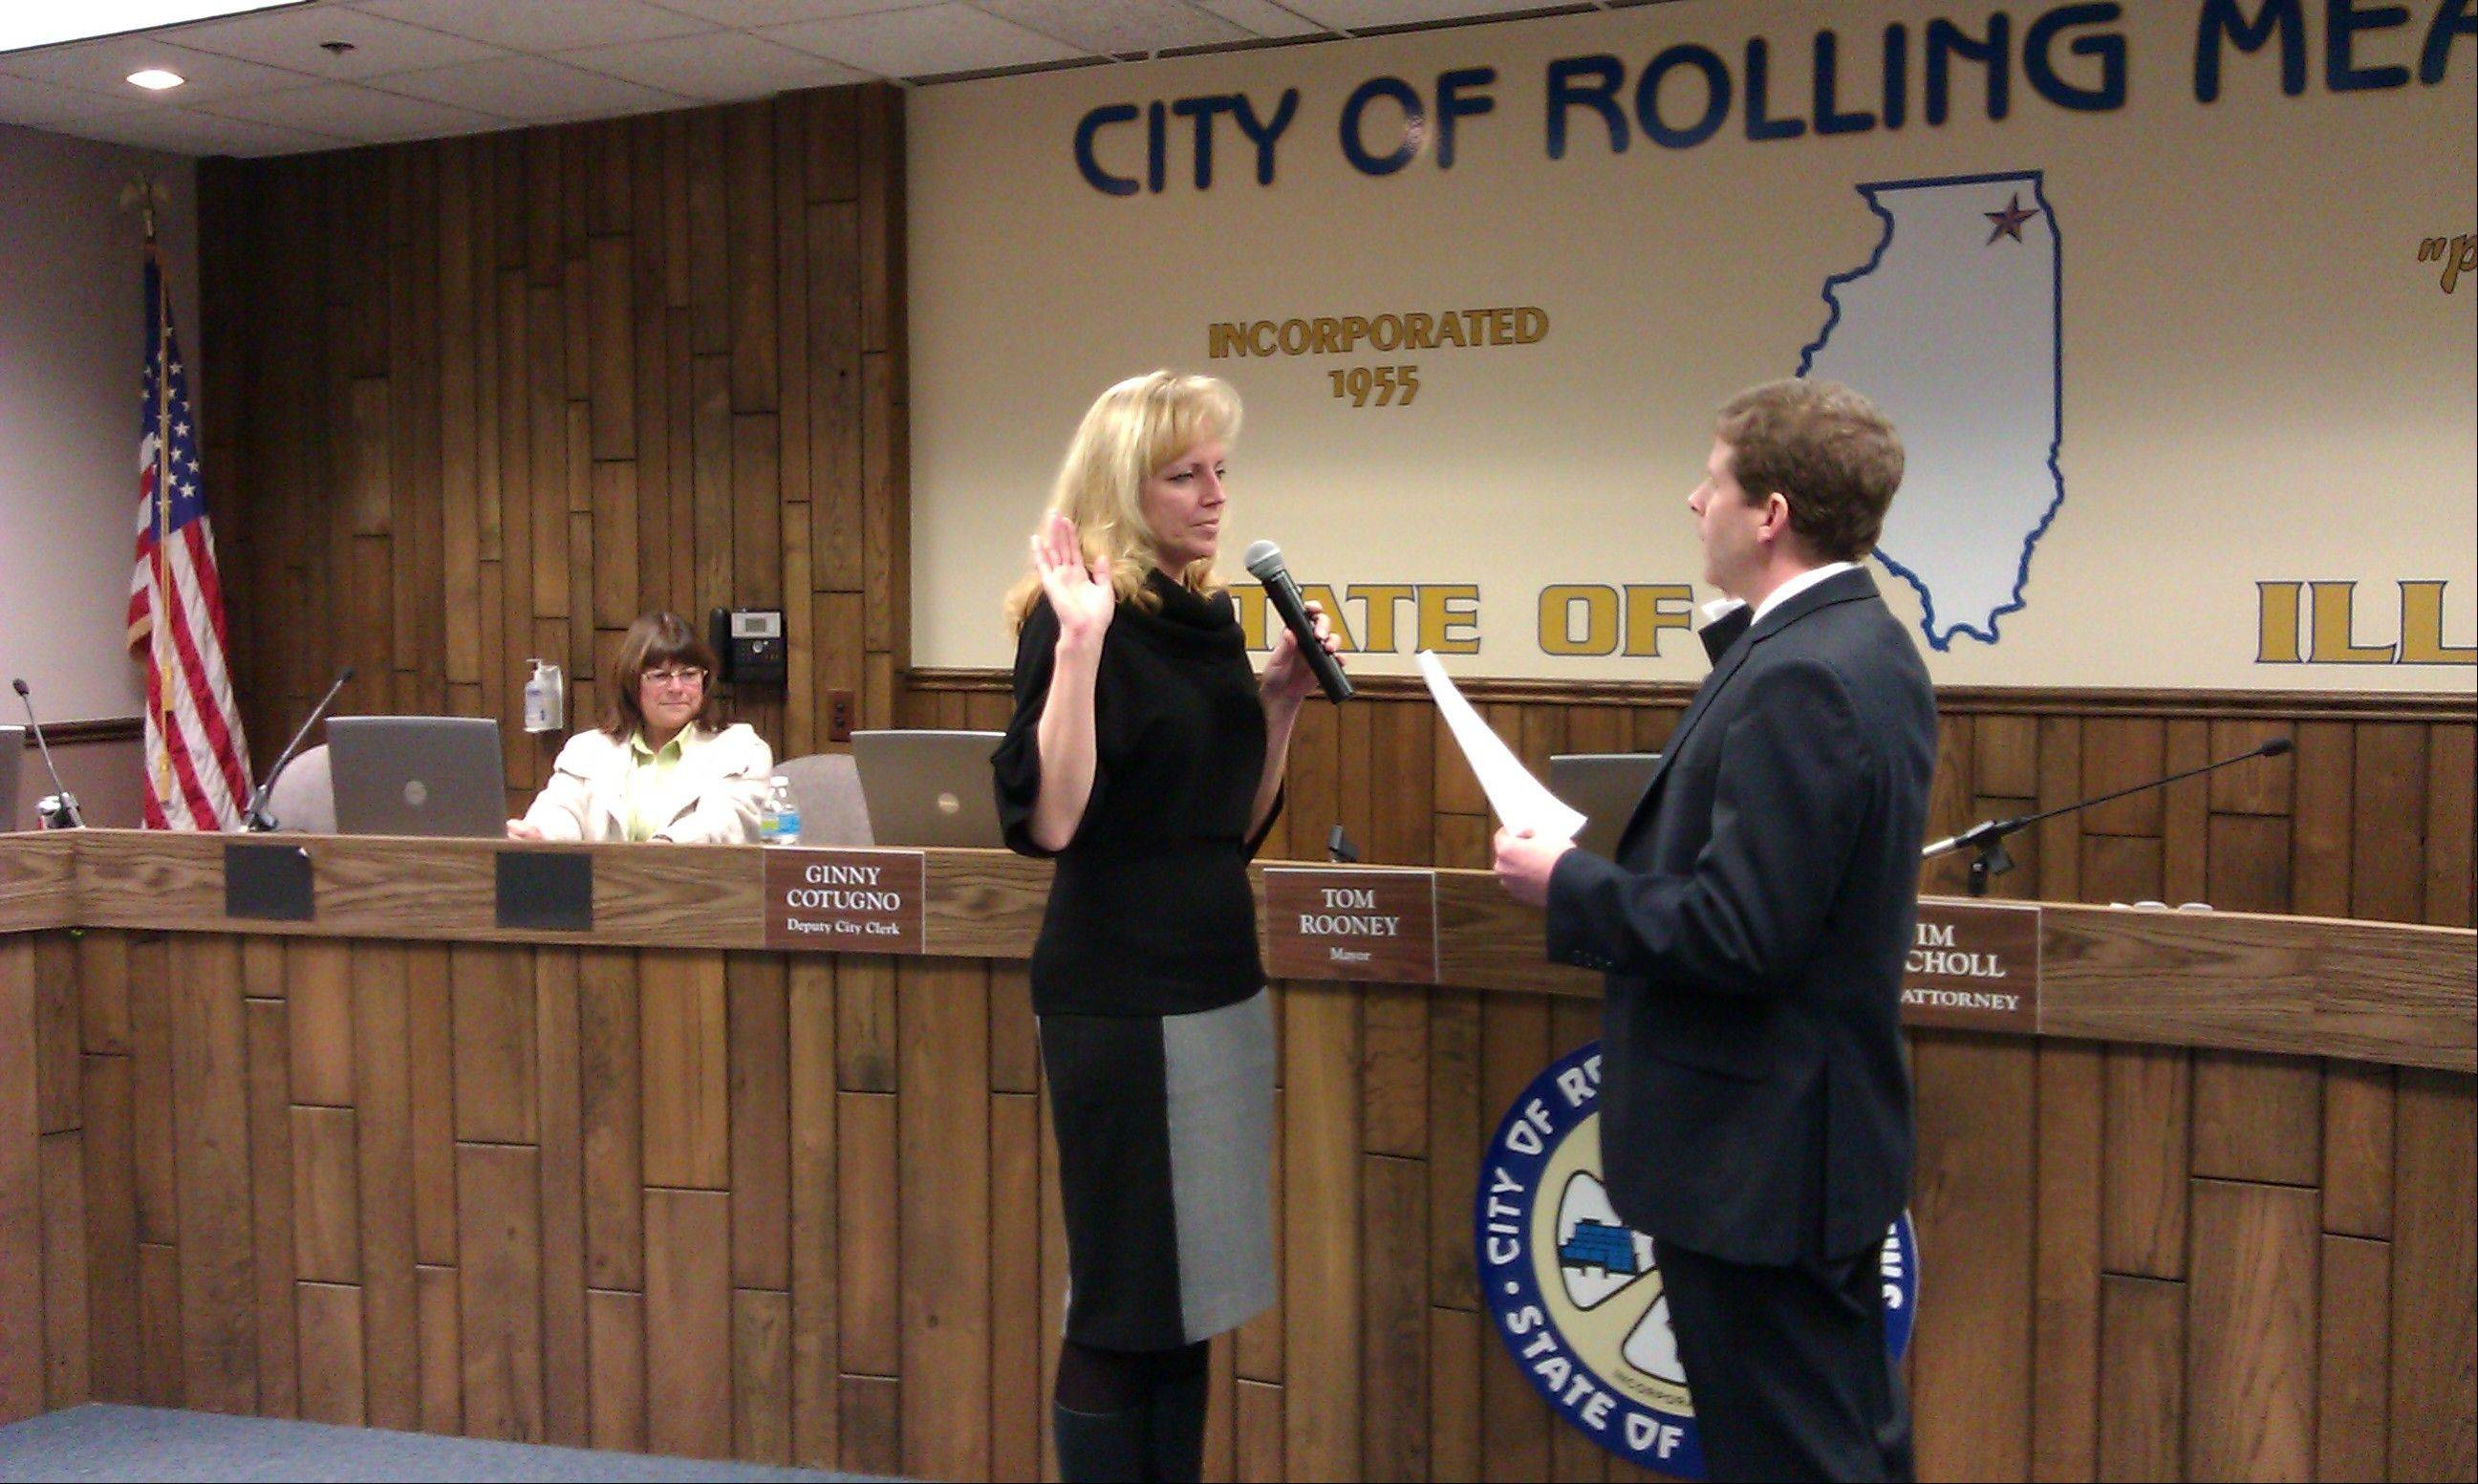 Laura Majikes takes the oath of office Tuesday as she was appointed as Rolling Meadows 3rd Ward alderman. Majikes is filling the seat left vacant after the death of former Alderman Larry Buske in December.